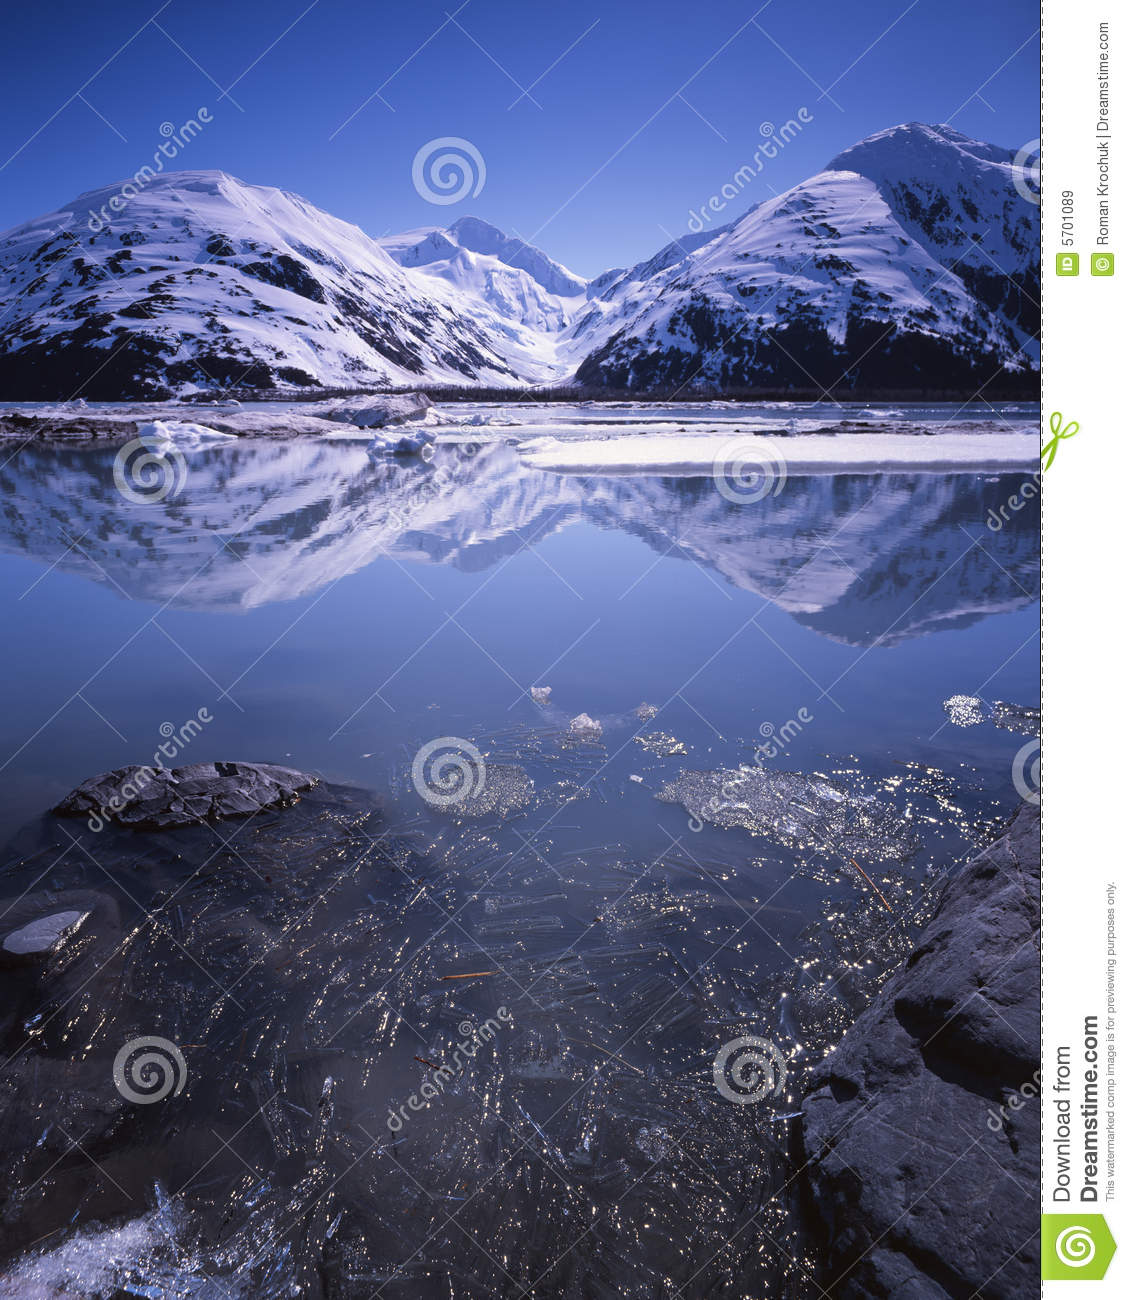 Portage Lake clipart #14, Download drawings